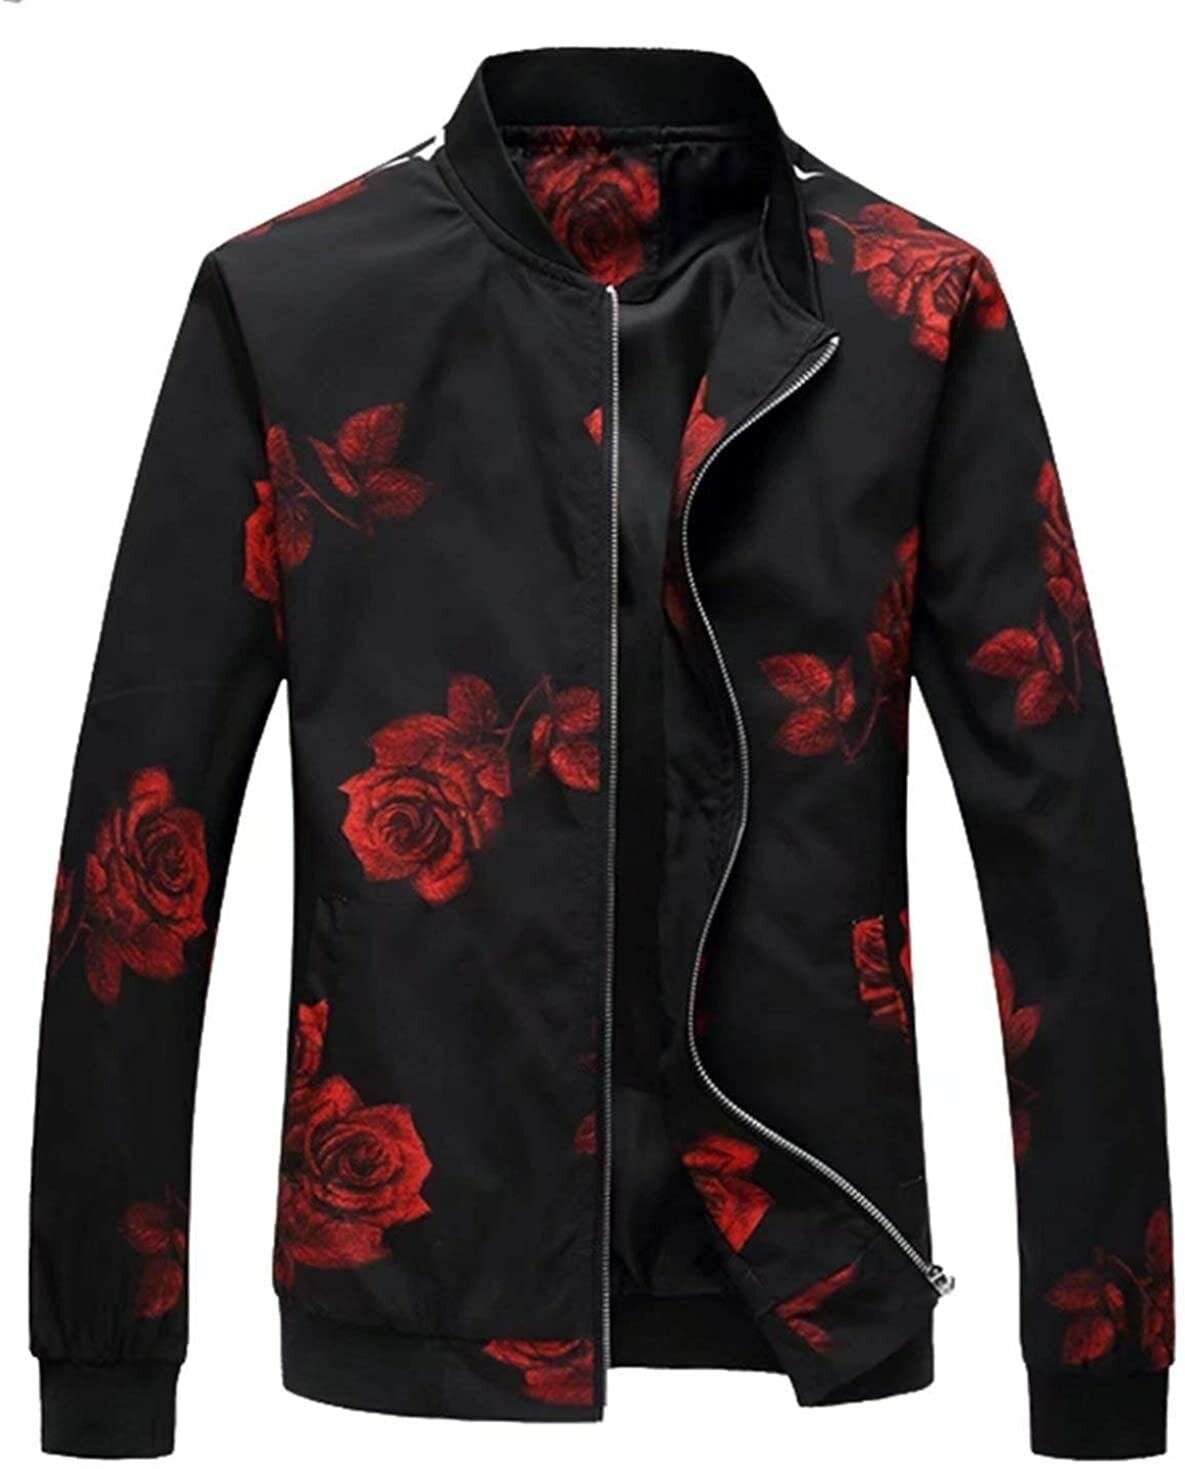 EMAOR Mens Casual Slim Fit Printed Jacket Coat (Lightweight Style & Cotton...